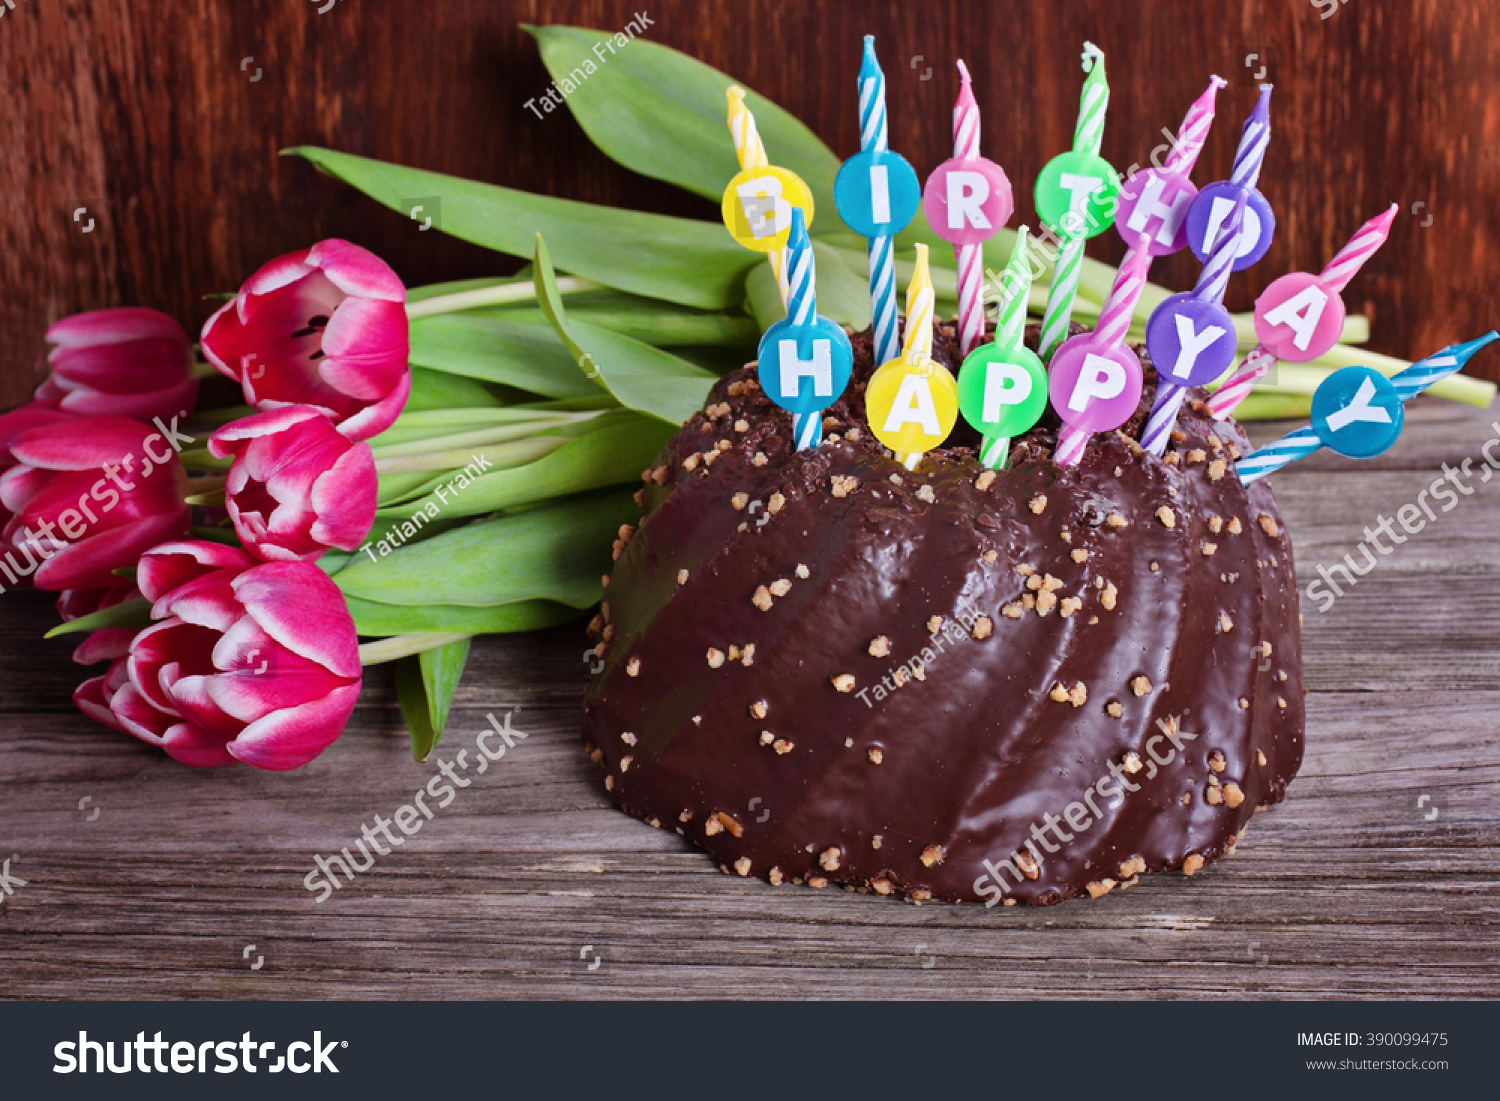 Chocolate Birthday Cake With Happy Candles And Tulips On Wooden Background